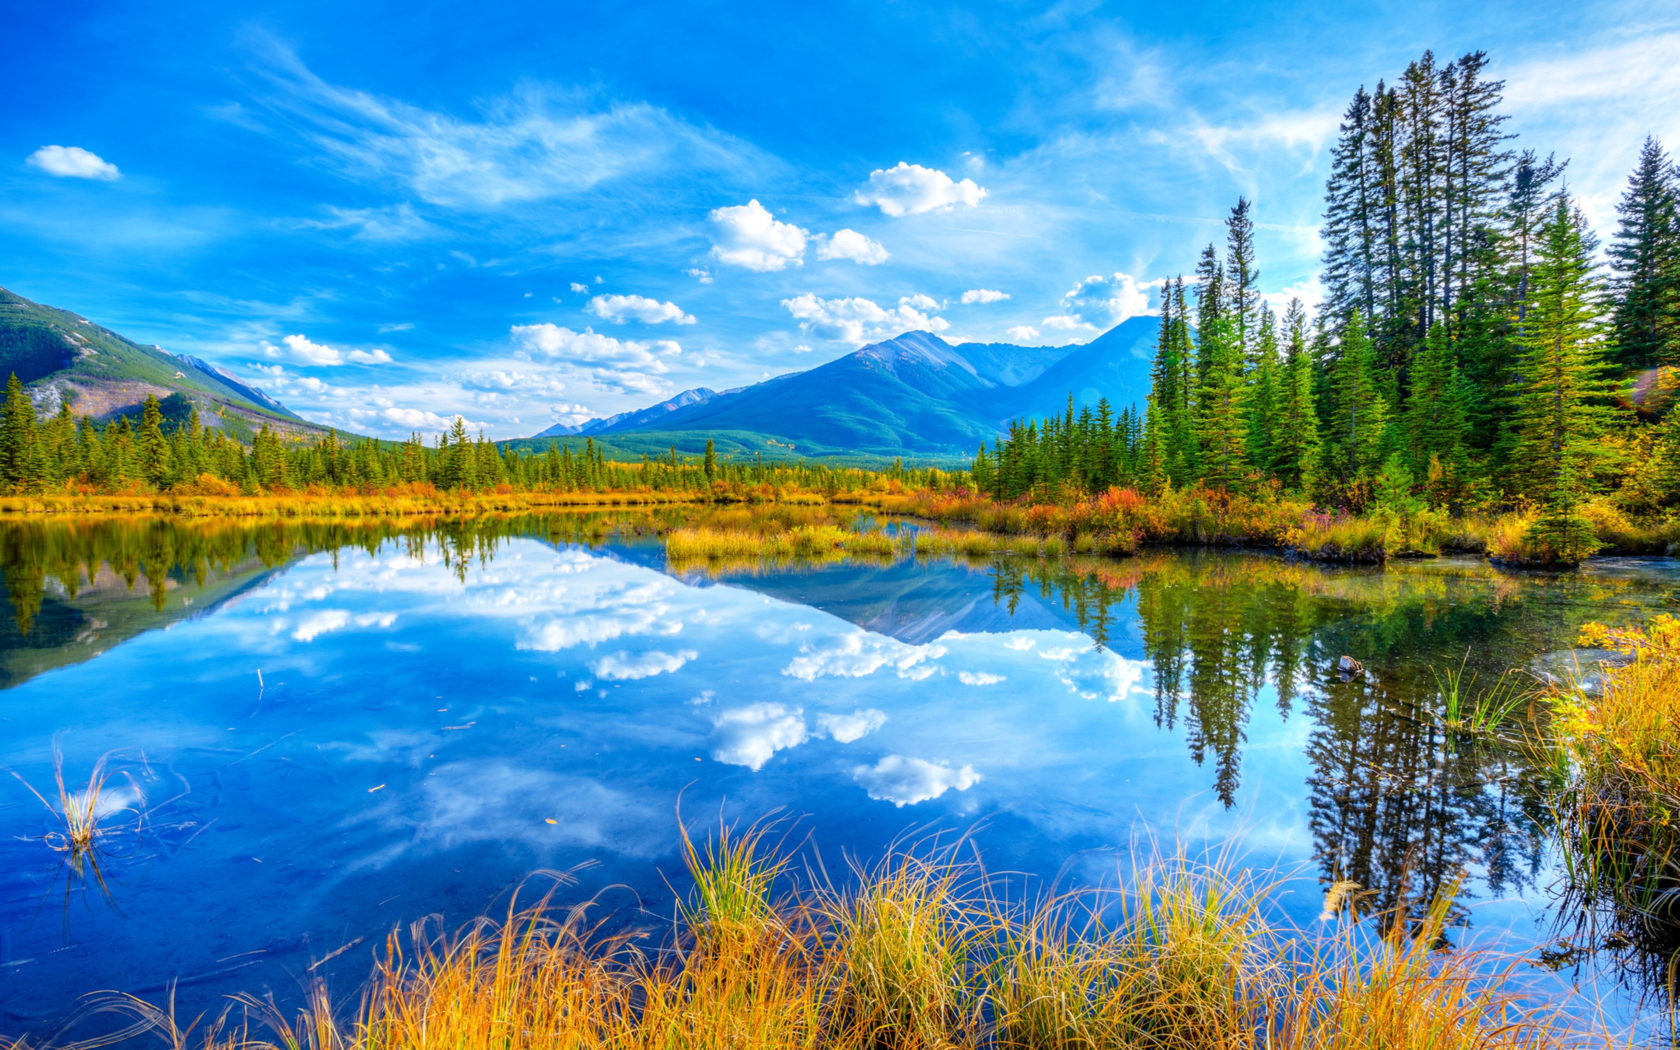 Fall Season Wallpaper Free Lake And Yellow Grass Pine Trees Reflecting The Blue Sky